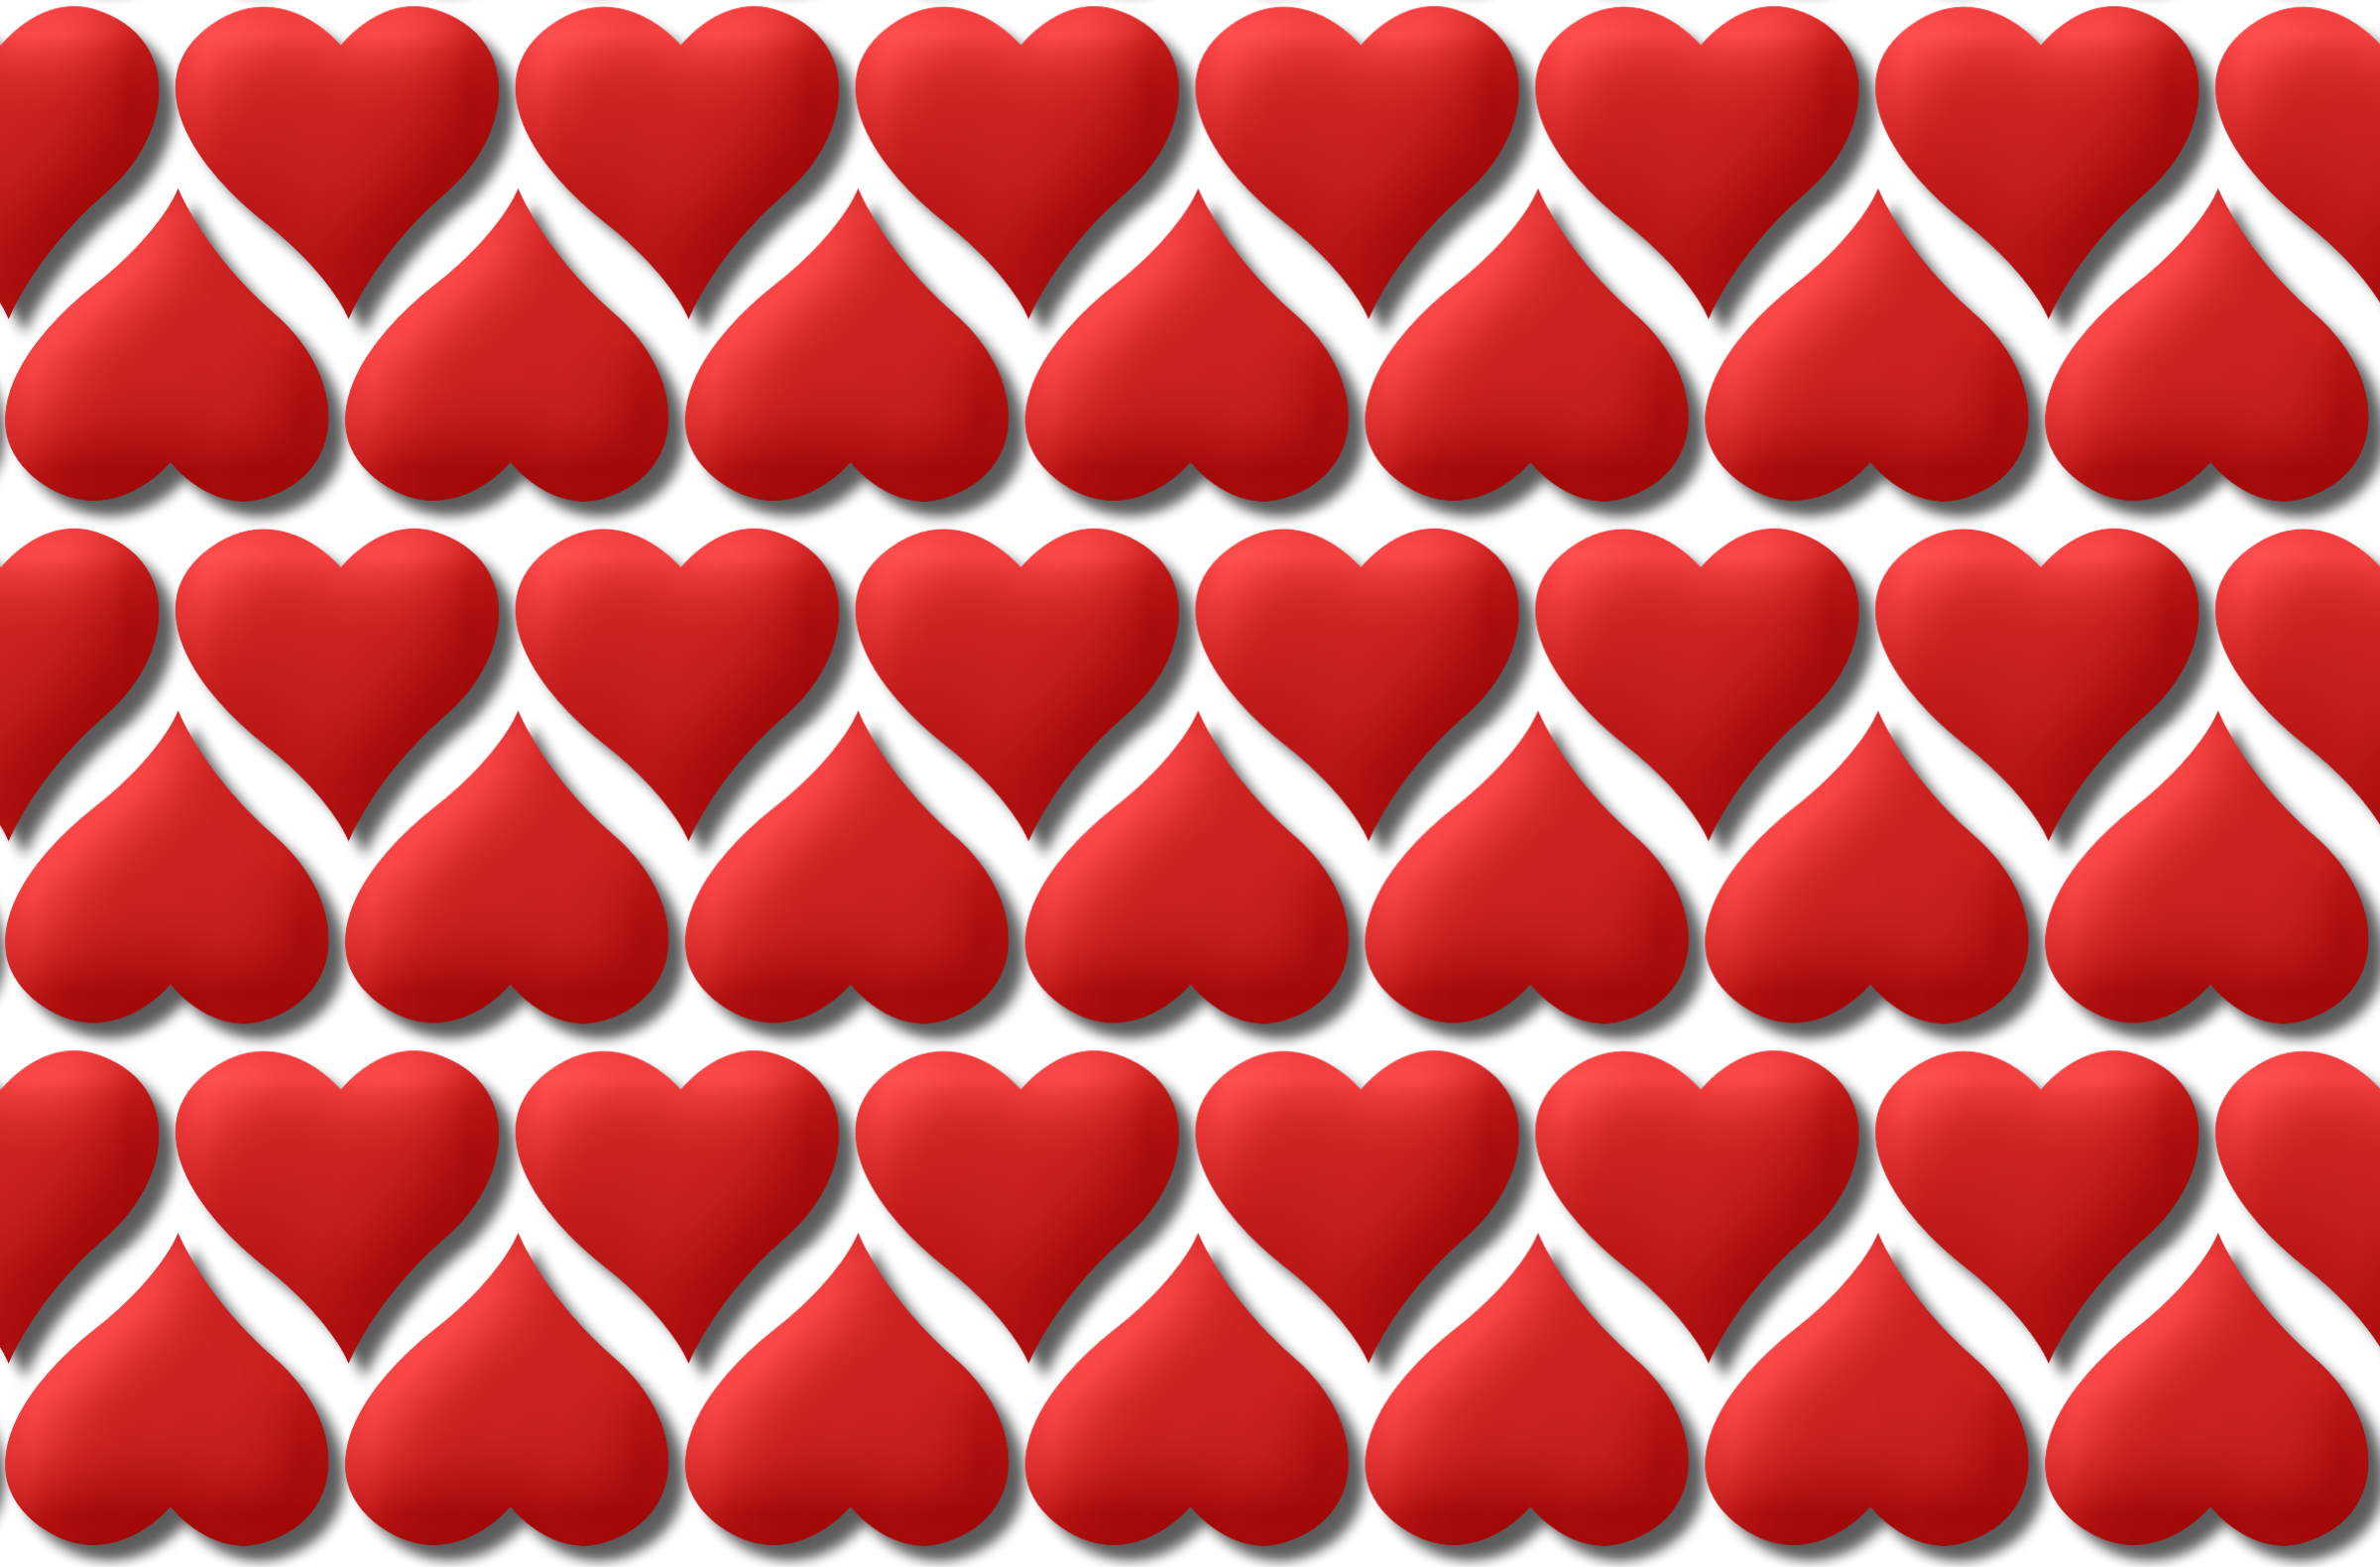 Heart pattern 4 (version 2) by Firkin